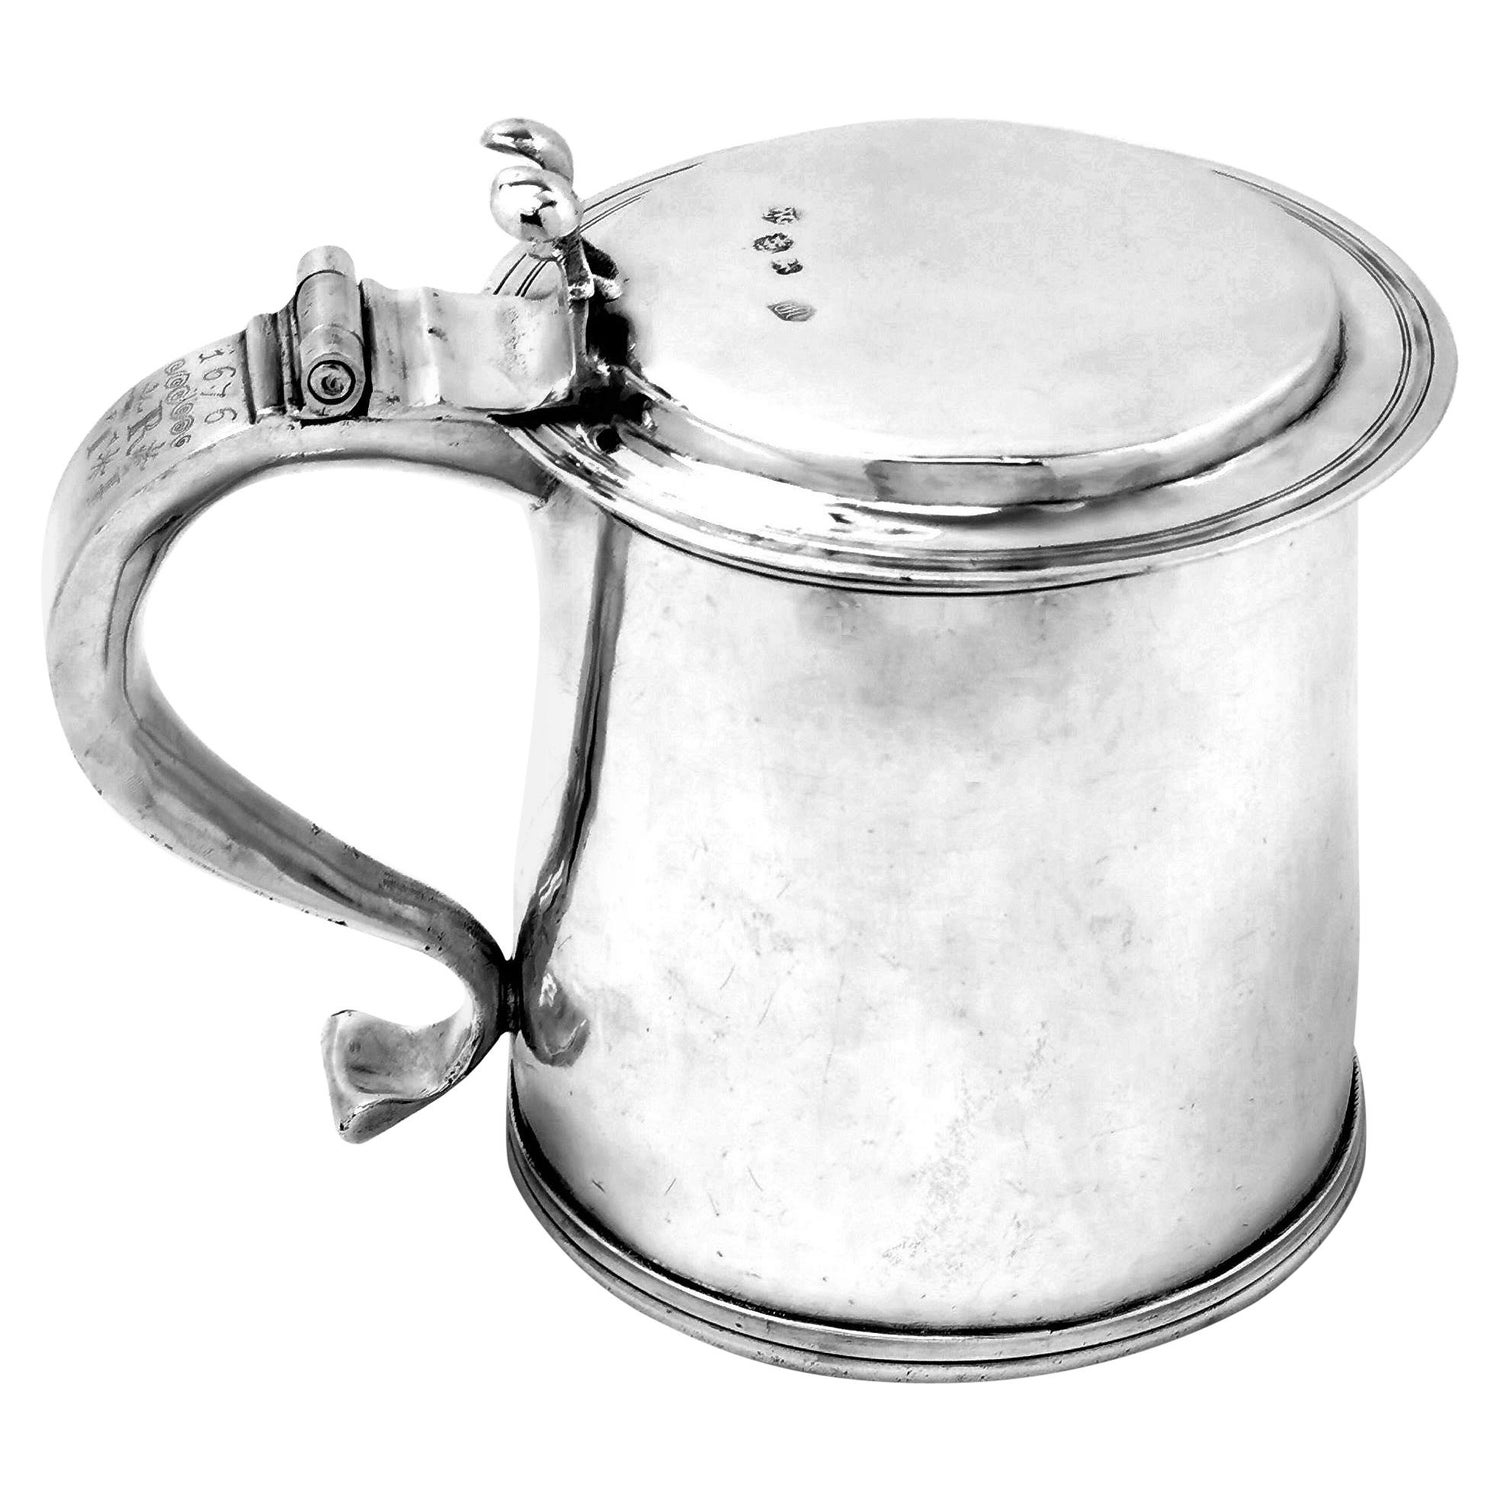 Antique Charles II Sterling Silver Lidded Tankard Beer Mug 1675, 17th Century